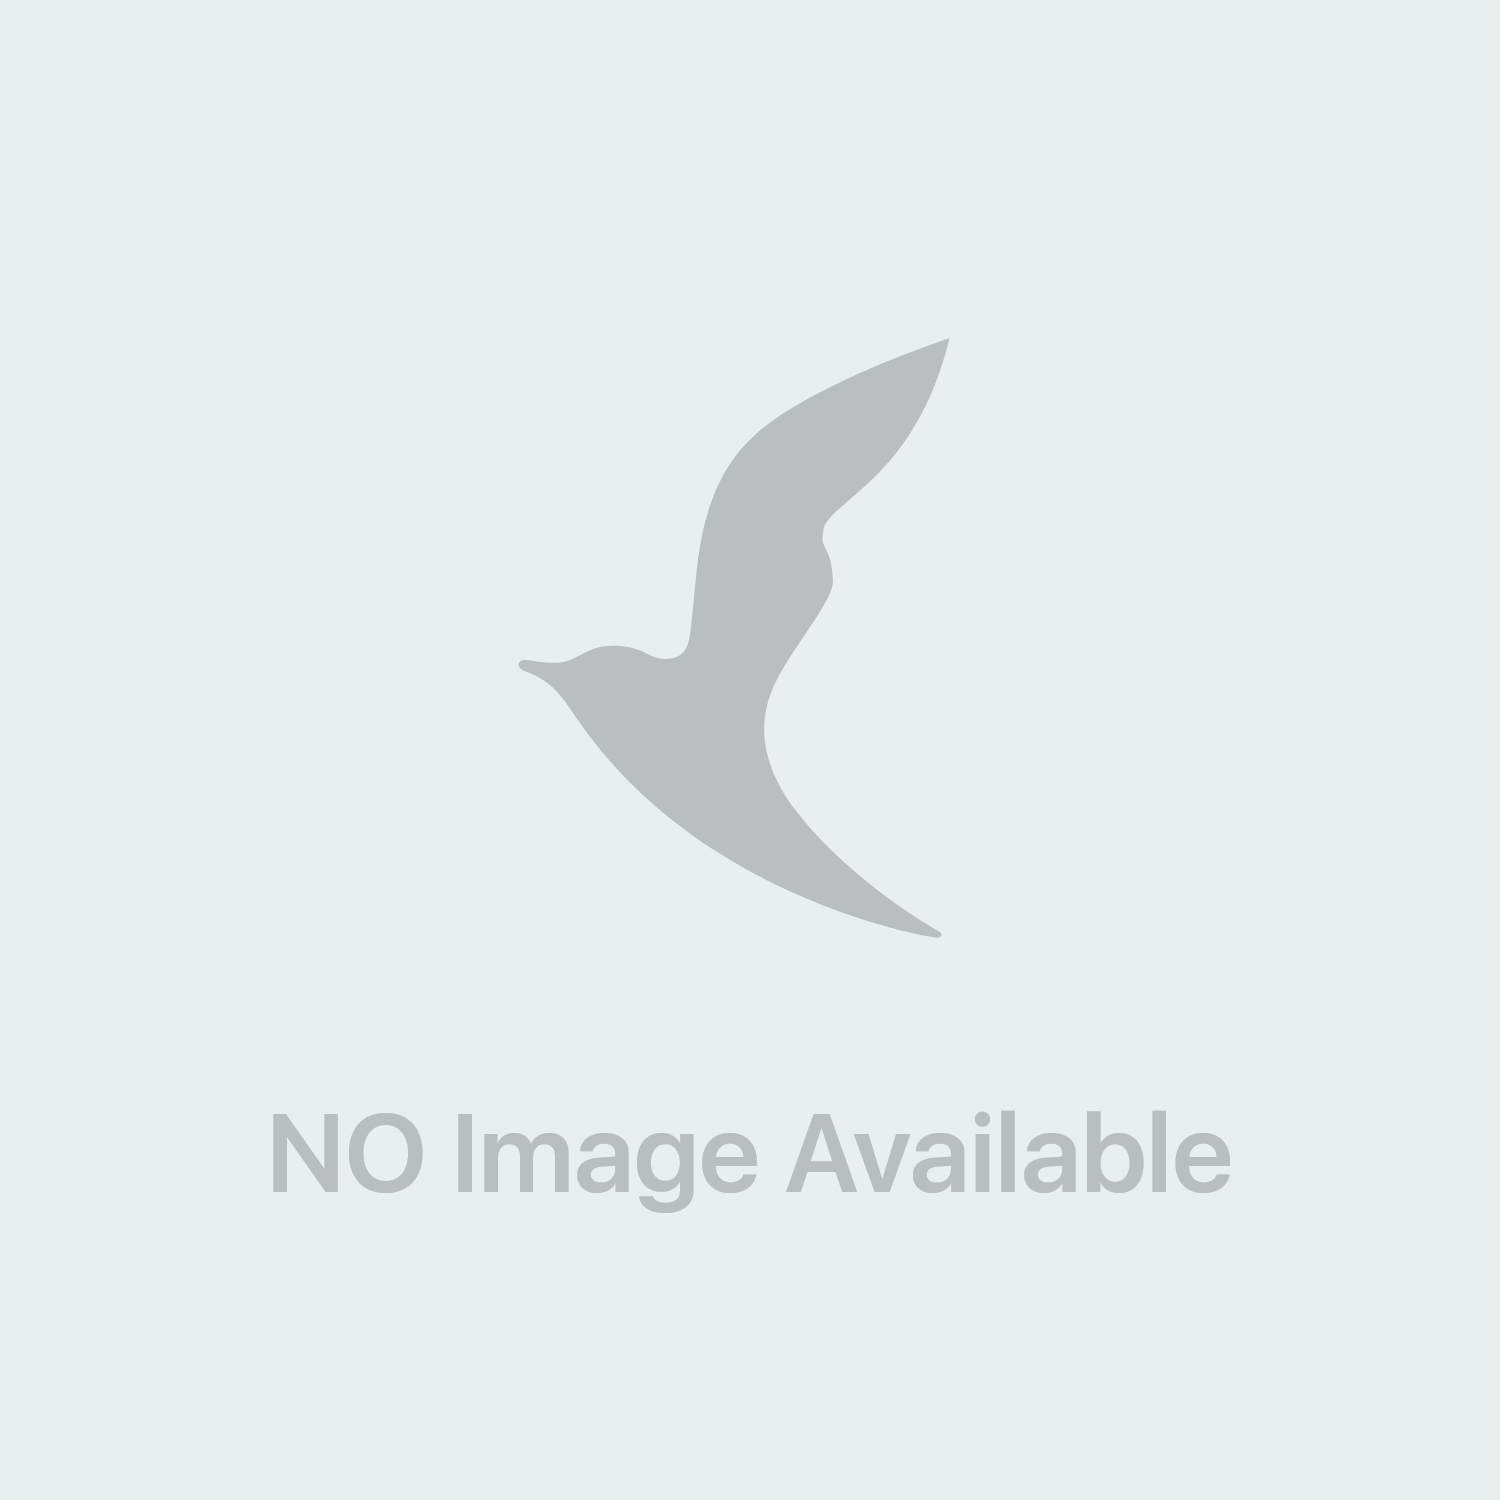 Vet Bros Spray Repellente Insetti e Parassiti Cani E Gatti 200ml